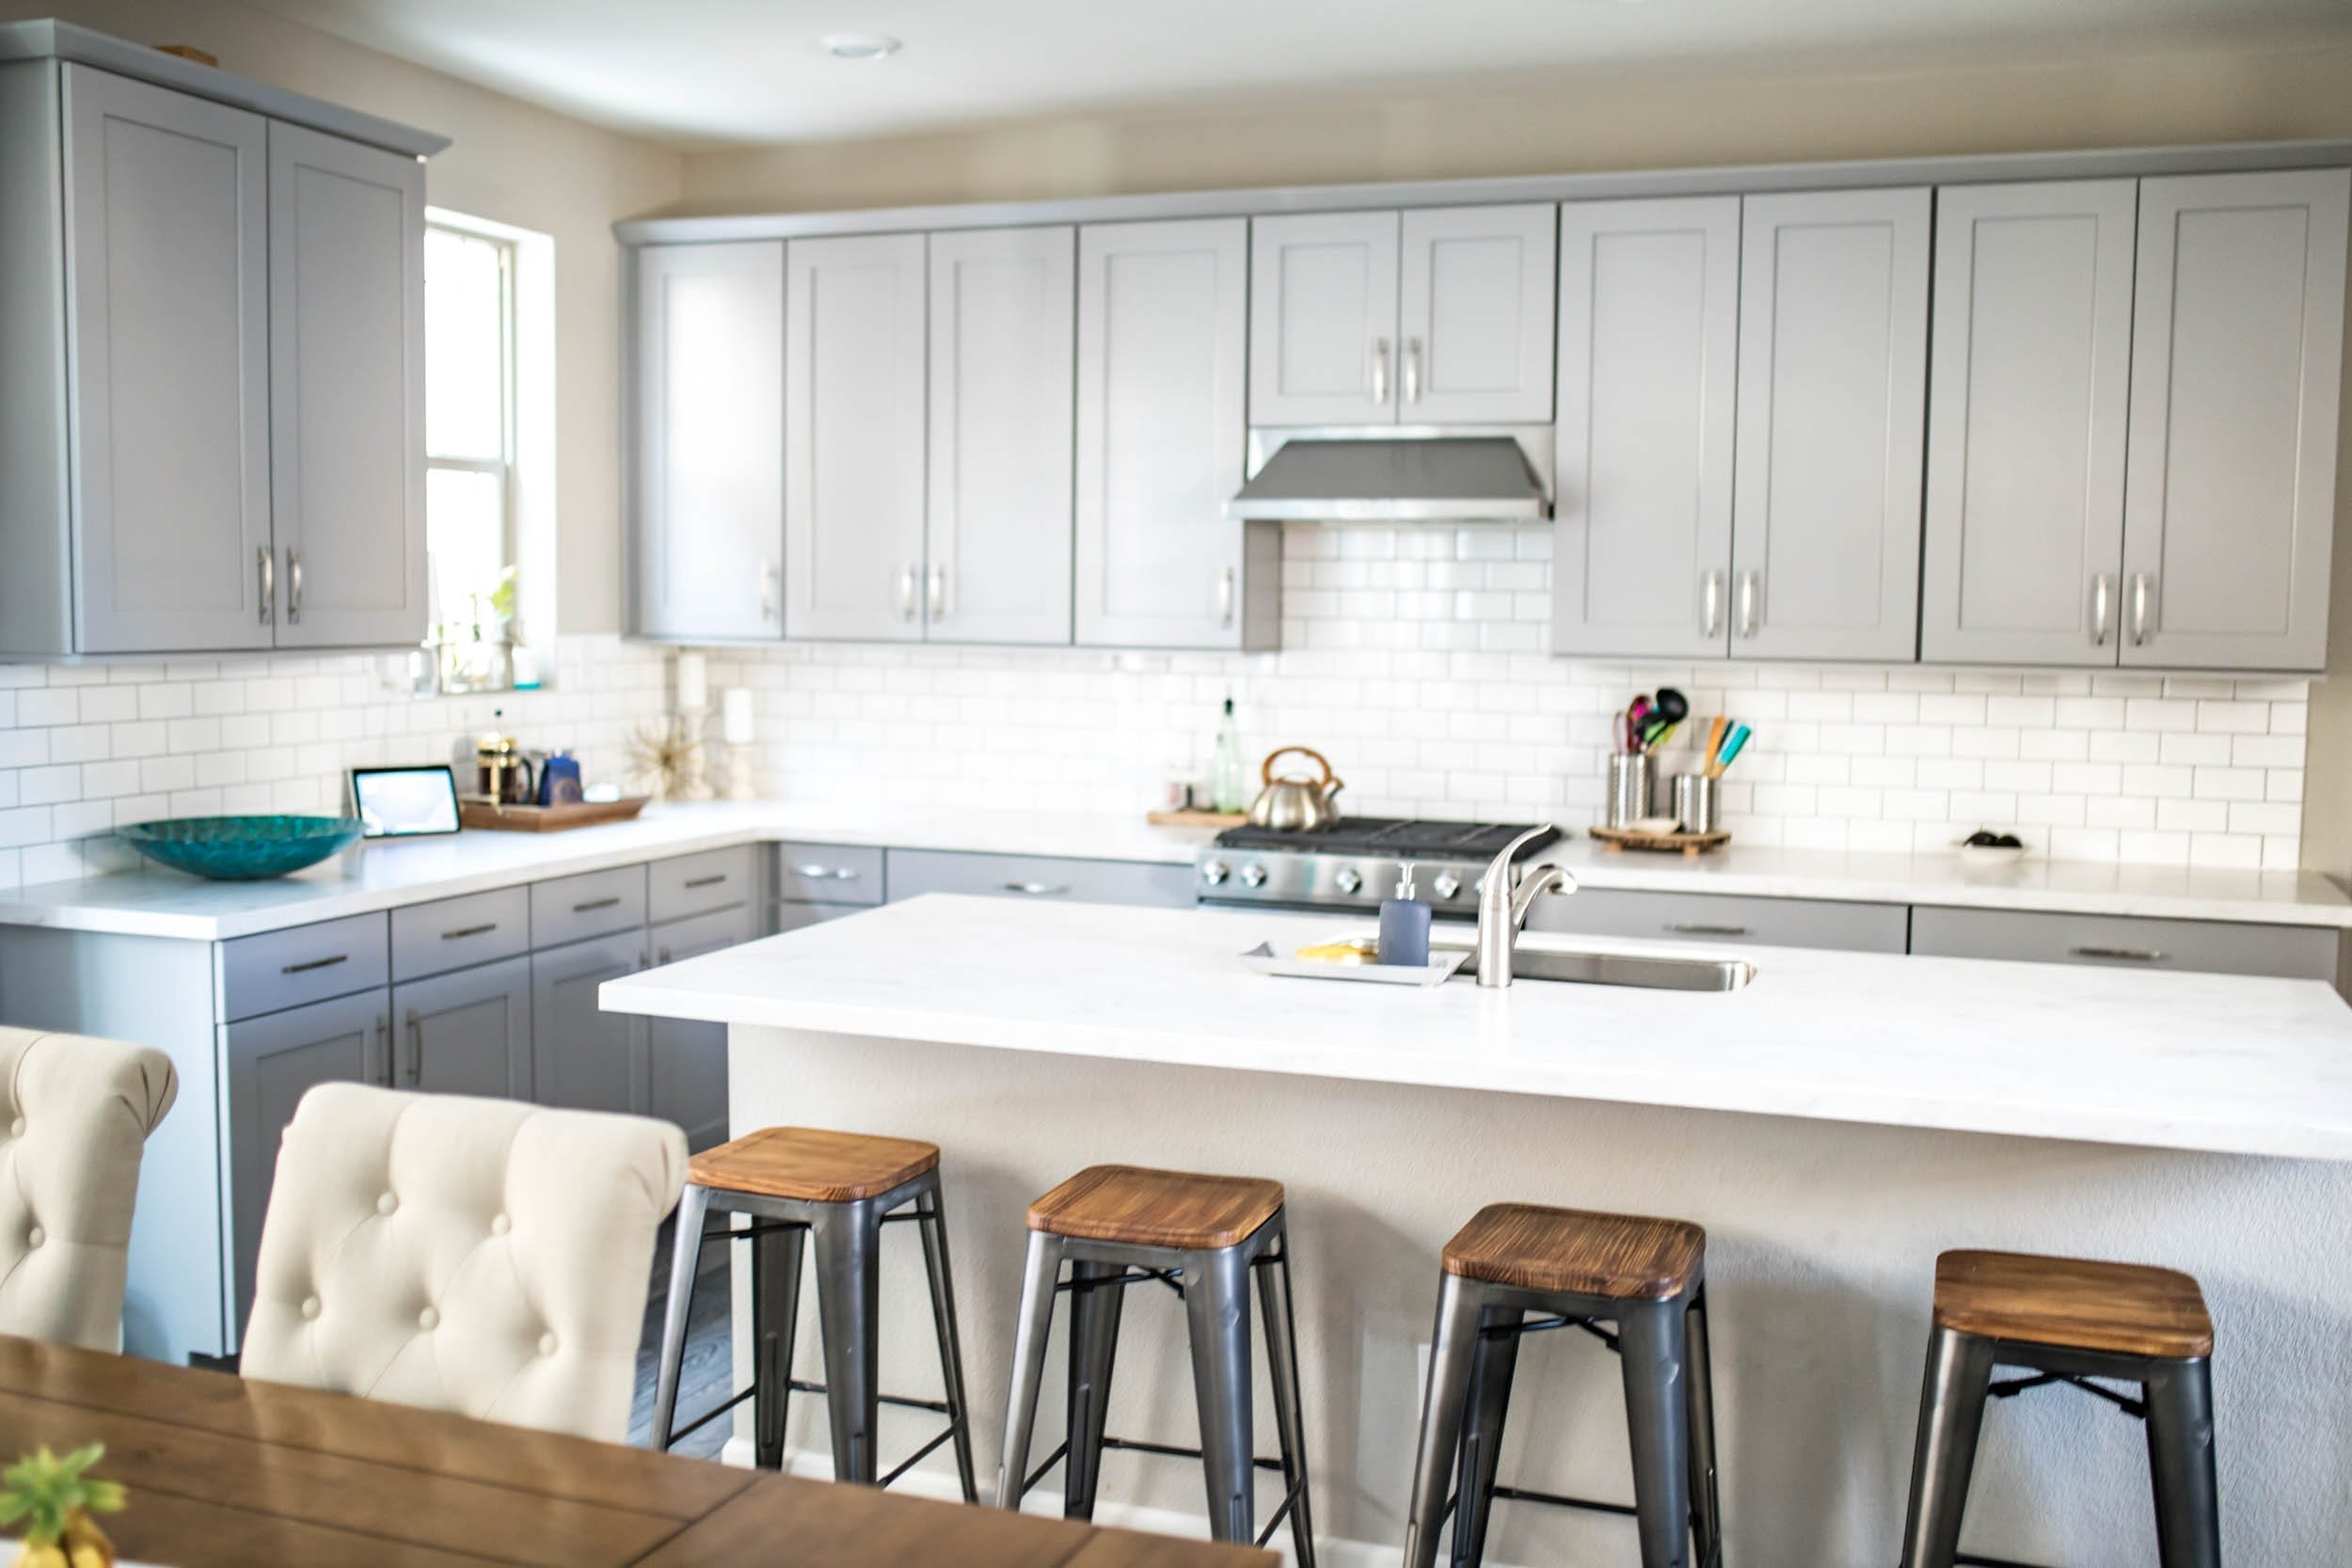 change grout color | charcoal grout | grout colors for white tile | grout colors for white subway tile | dark grey grout for subway tile | grout refresh | change grout color subway tile | Never Skip Brunch by Cara Newhart | #livingroom #home #decor #neverskipbrunch